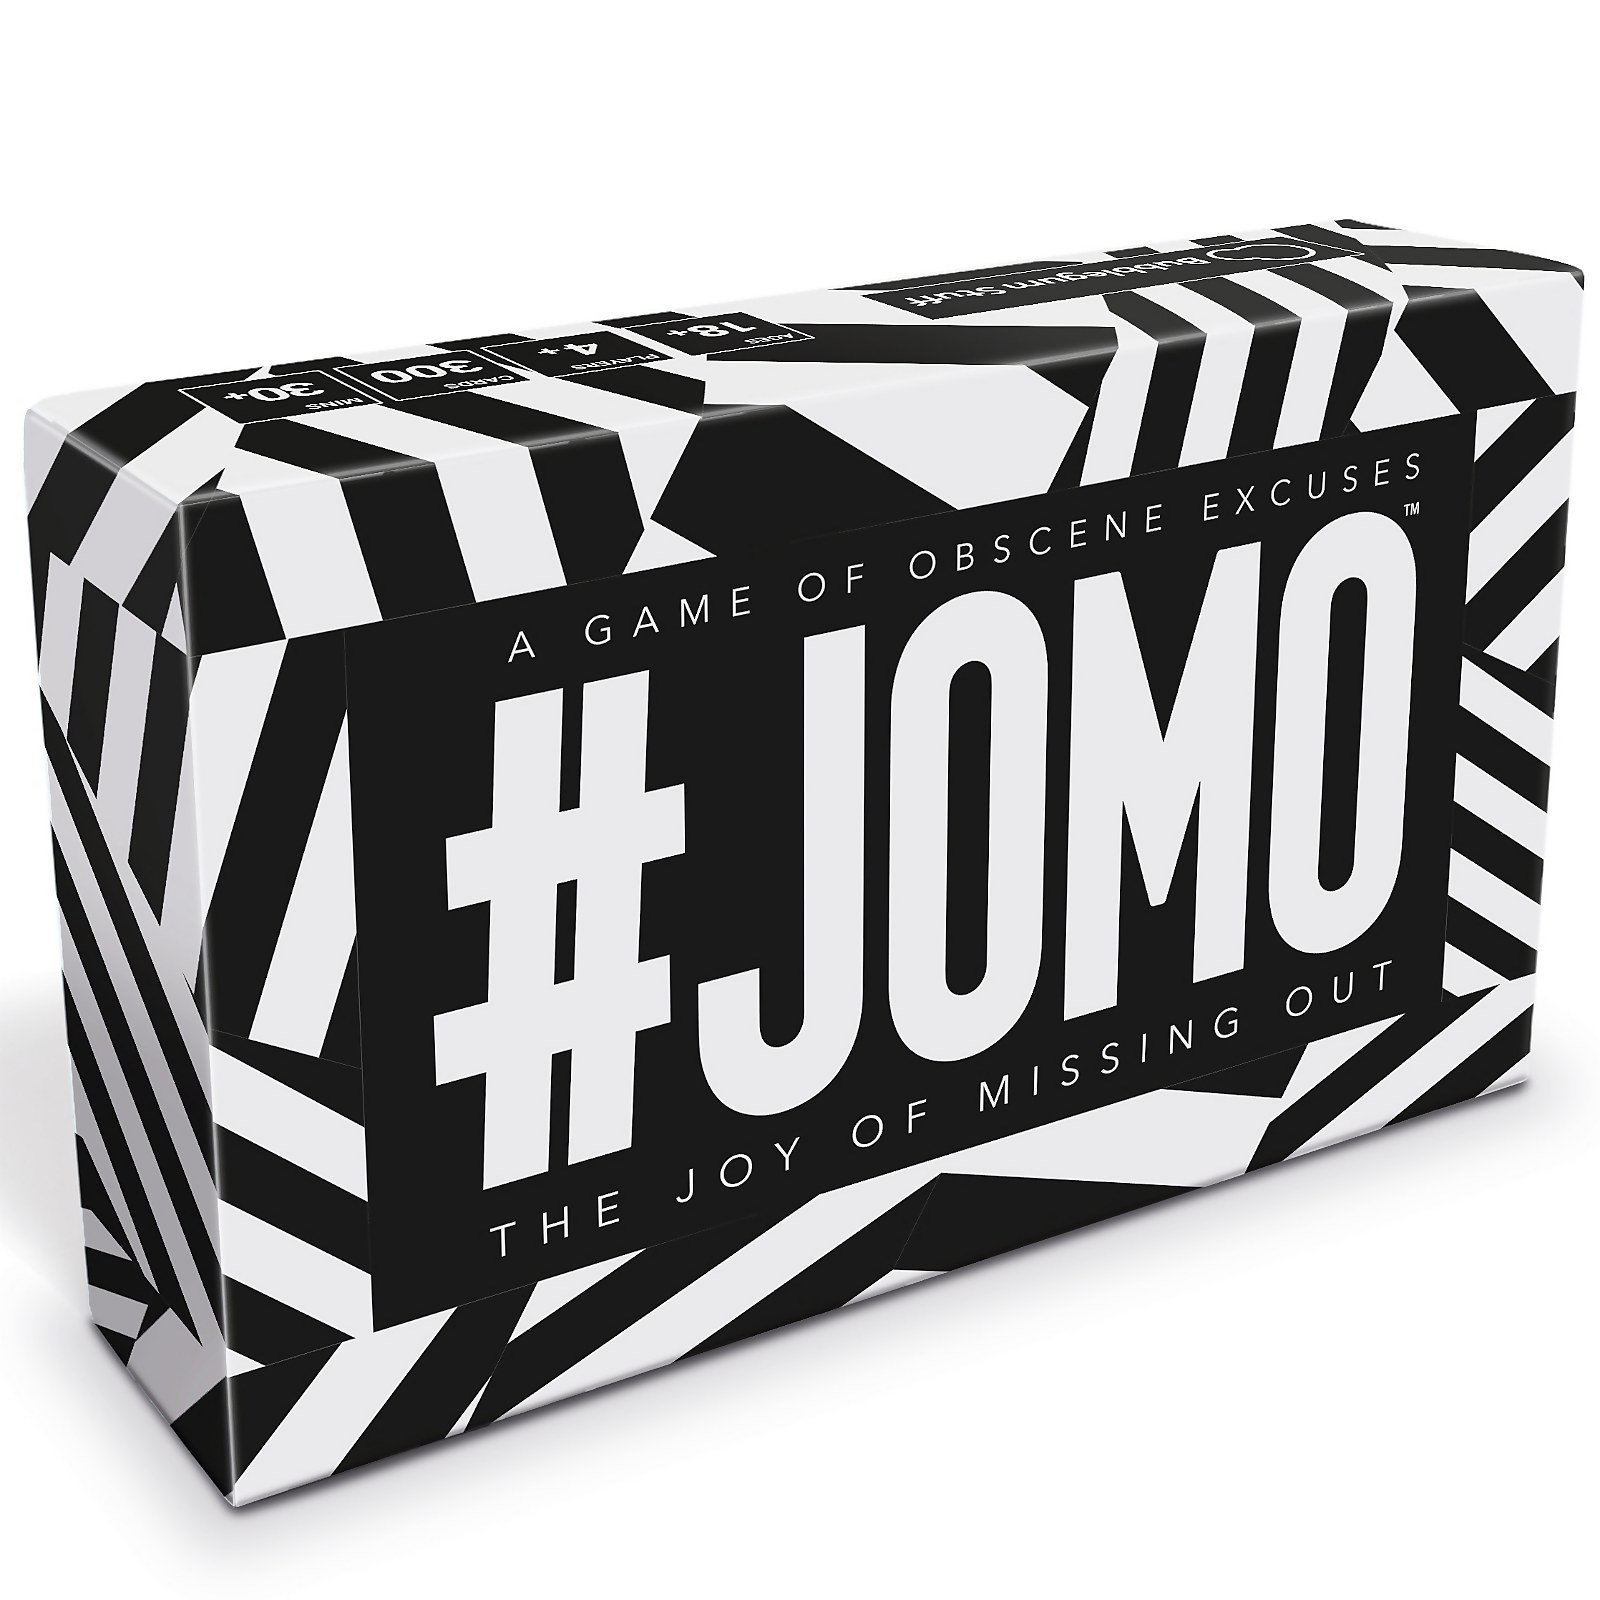 Image of JOMO Perfect Excuses to Miss Out Cards